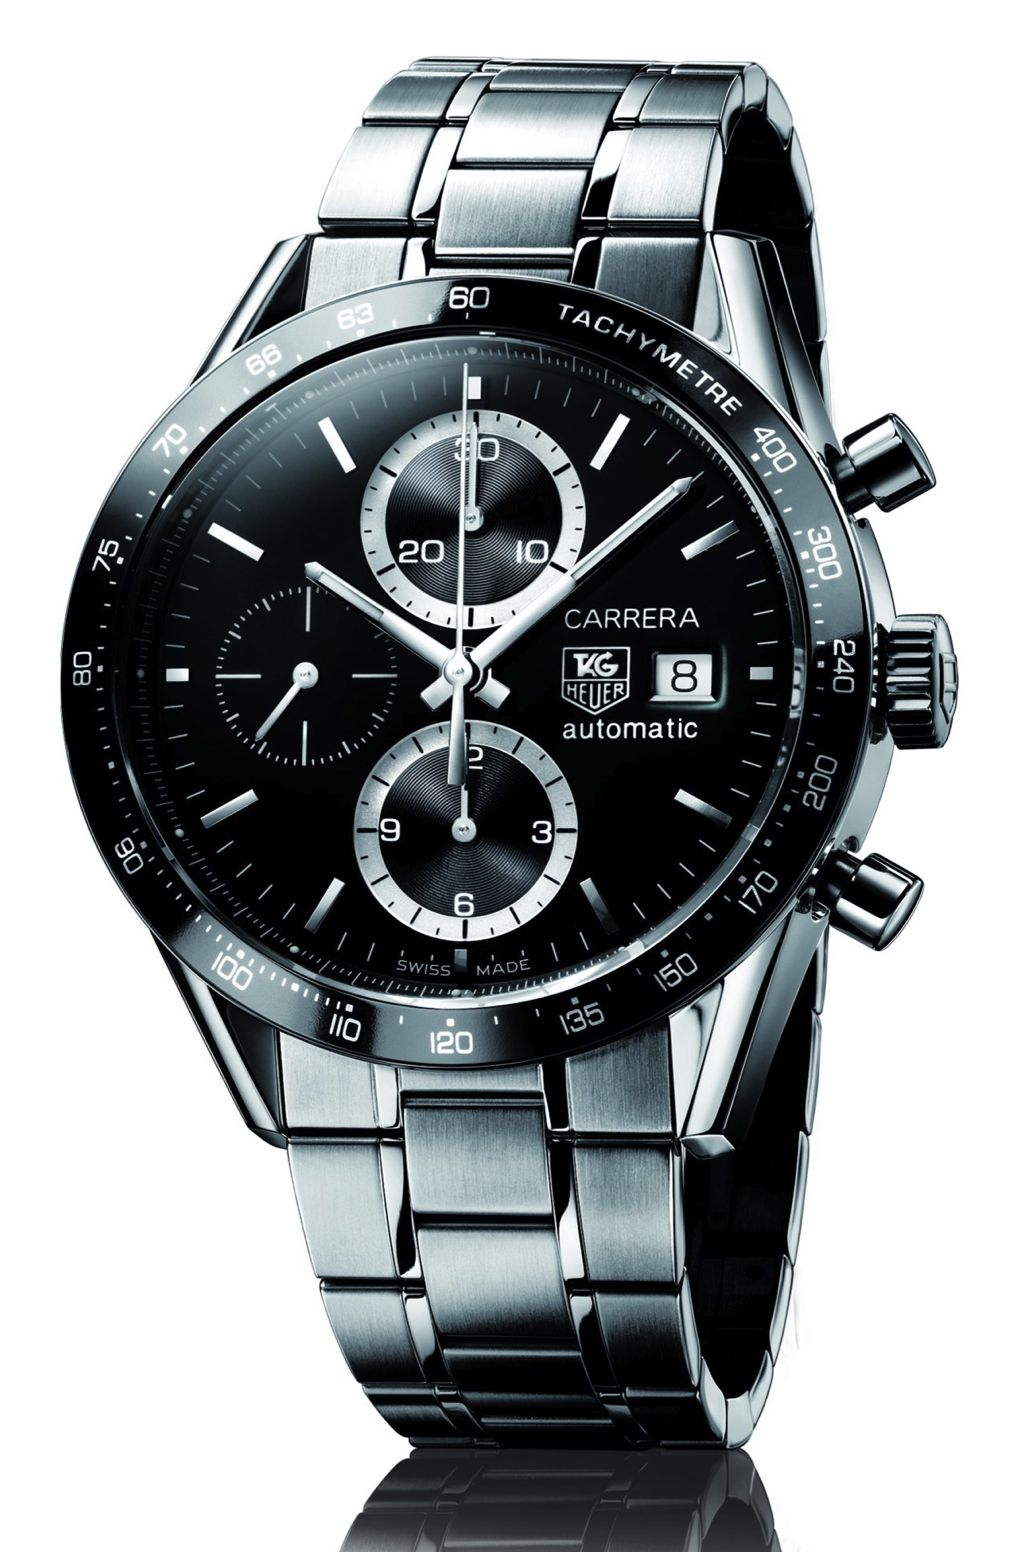 tag heuer carrera automatic day date caliber 16 watch swiss sports watch. Black Bedroom Furniture Sets. Home Design Ideas